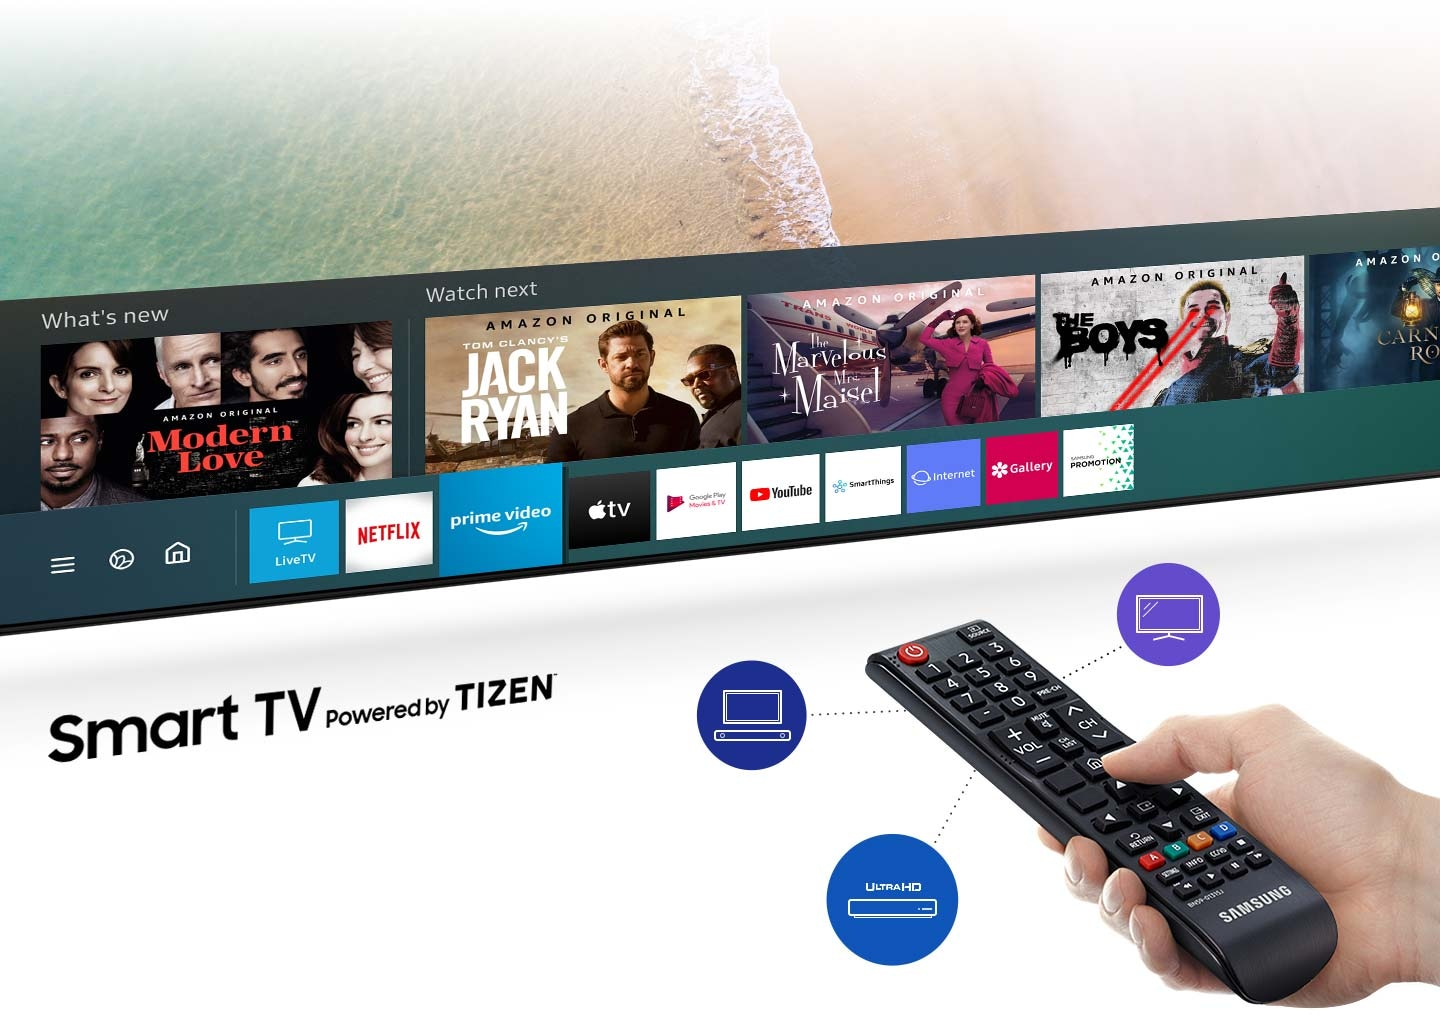 Find a variety of content with one remote (ROW)